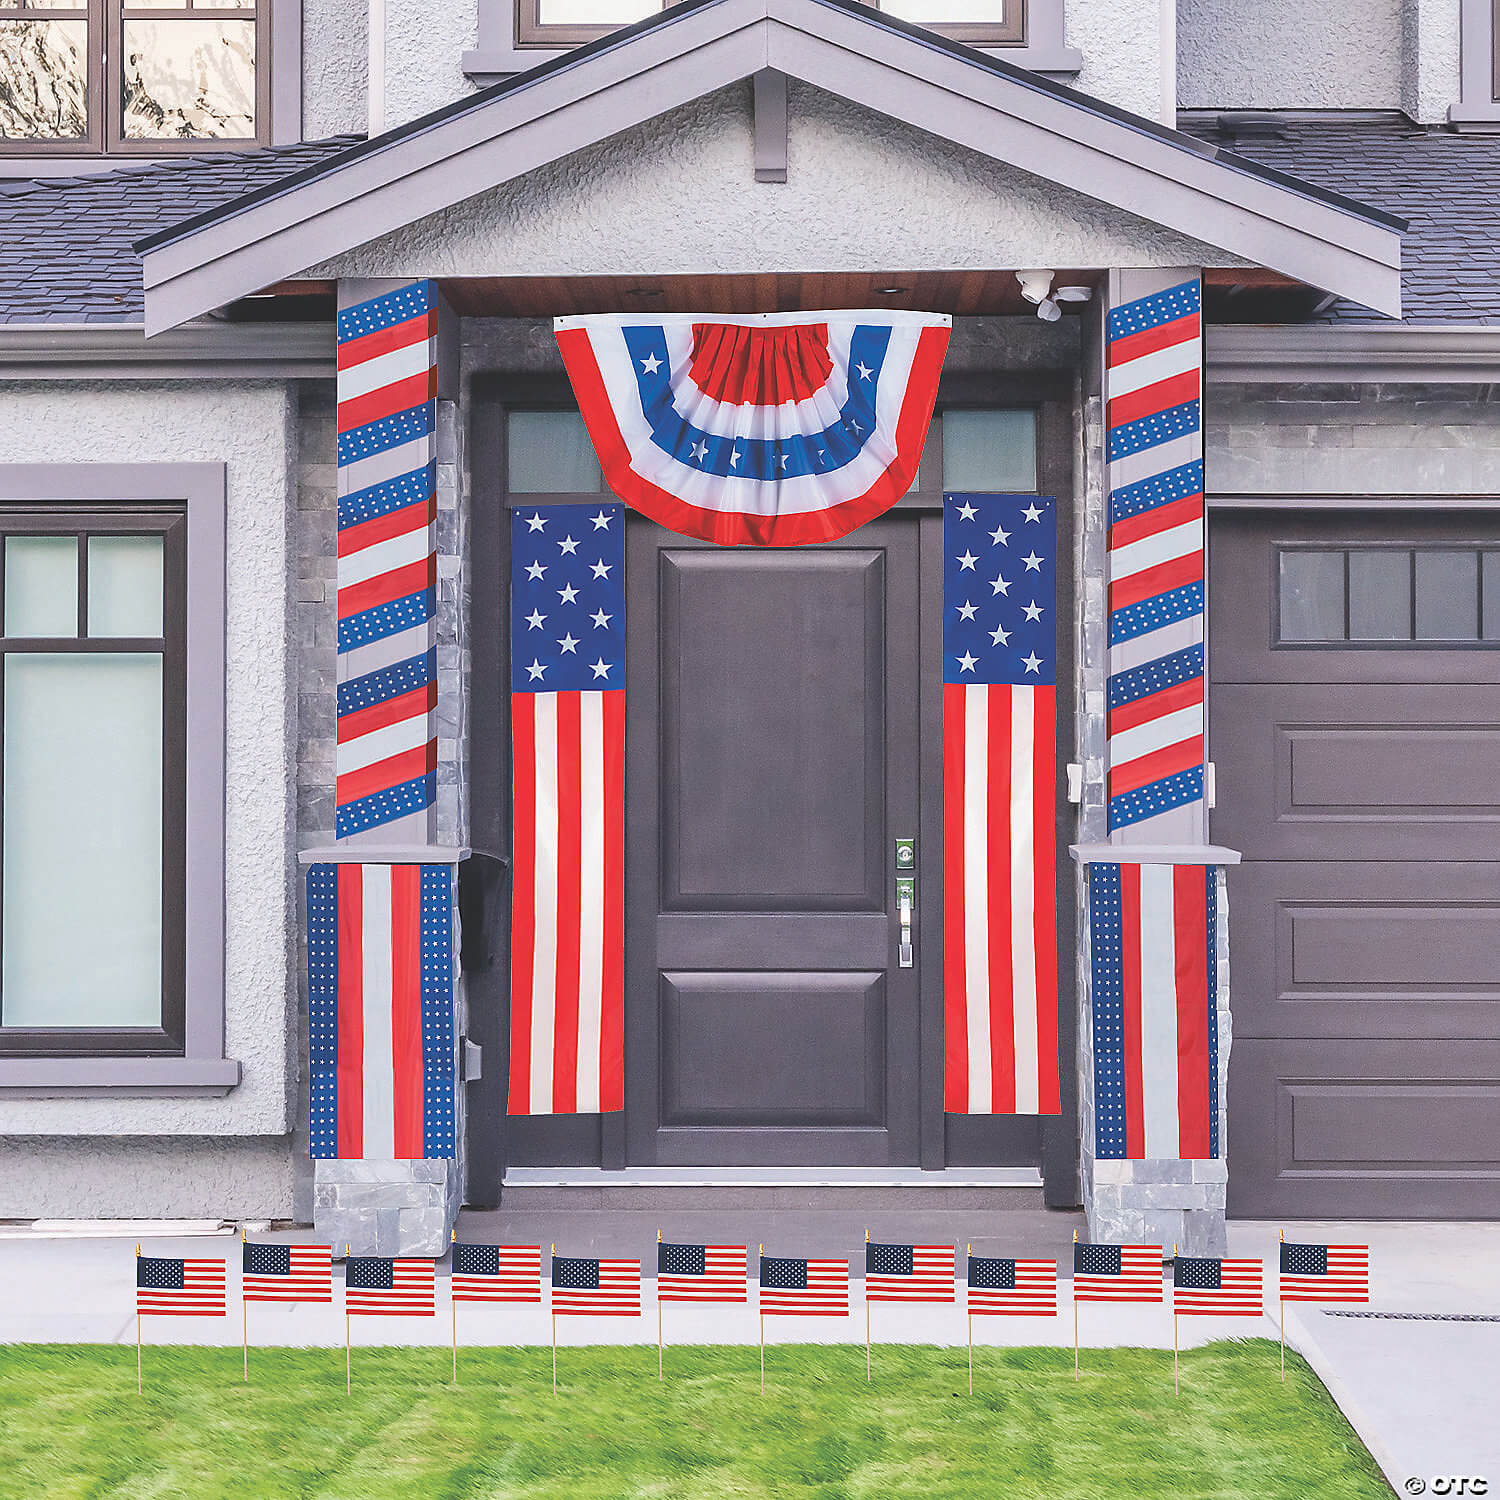 Town of Oyster Bay launches July 4 decorating contest  for residents